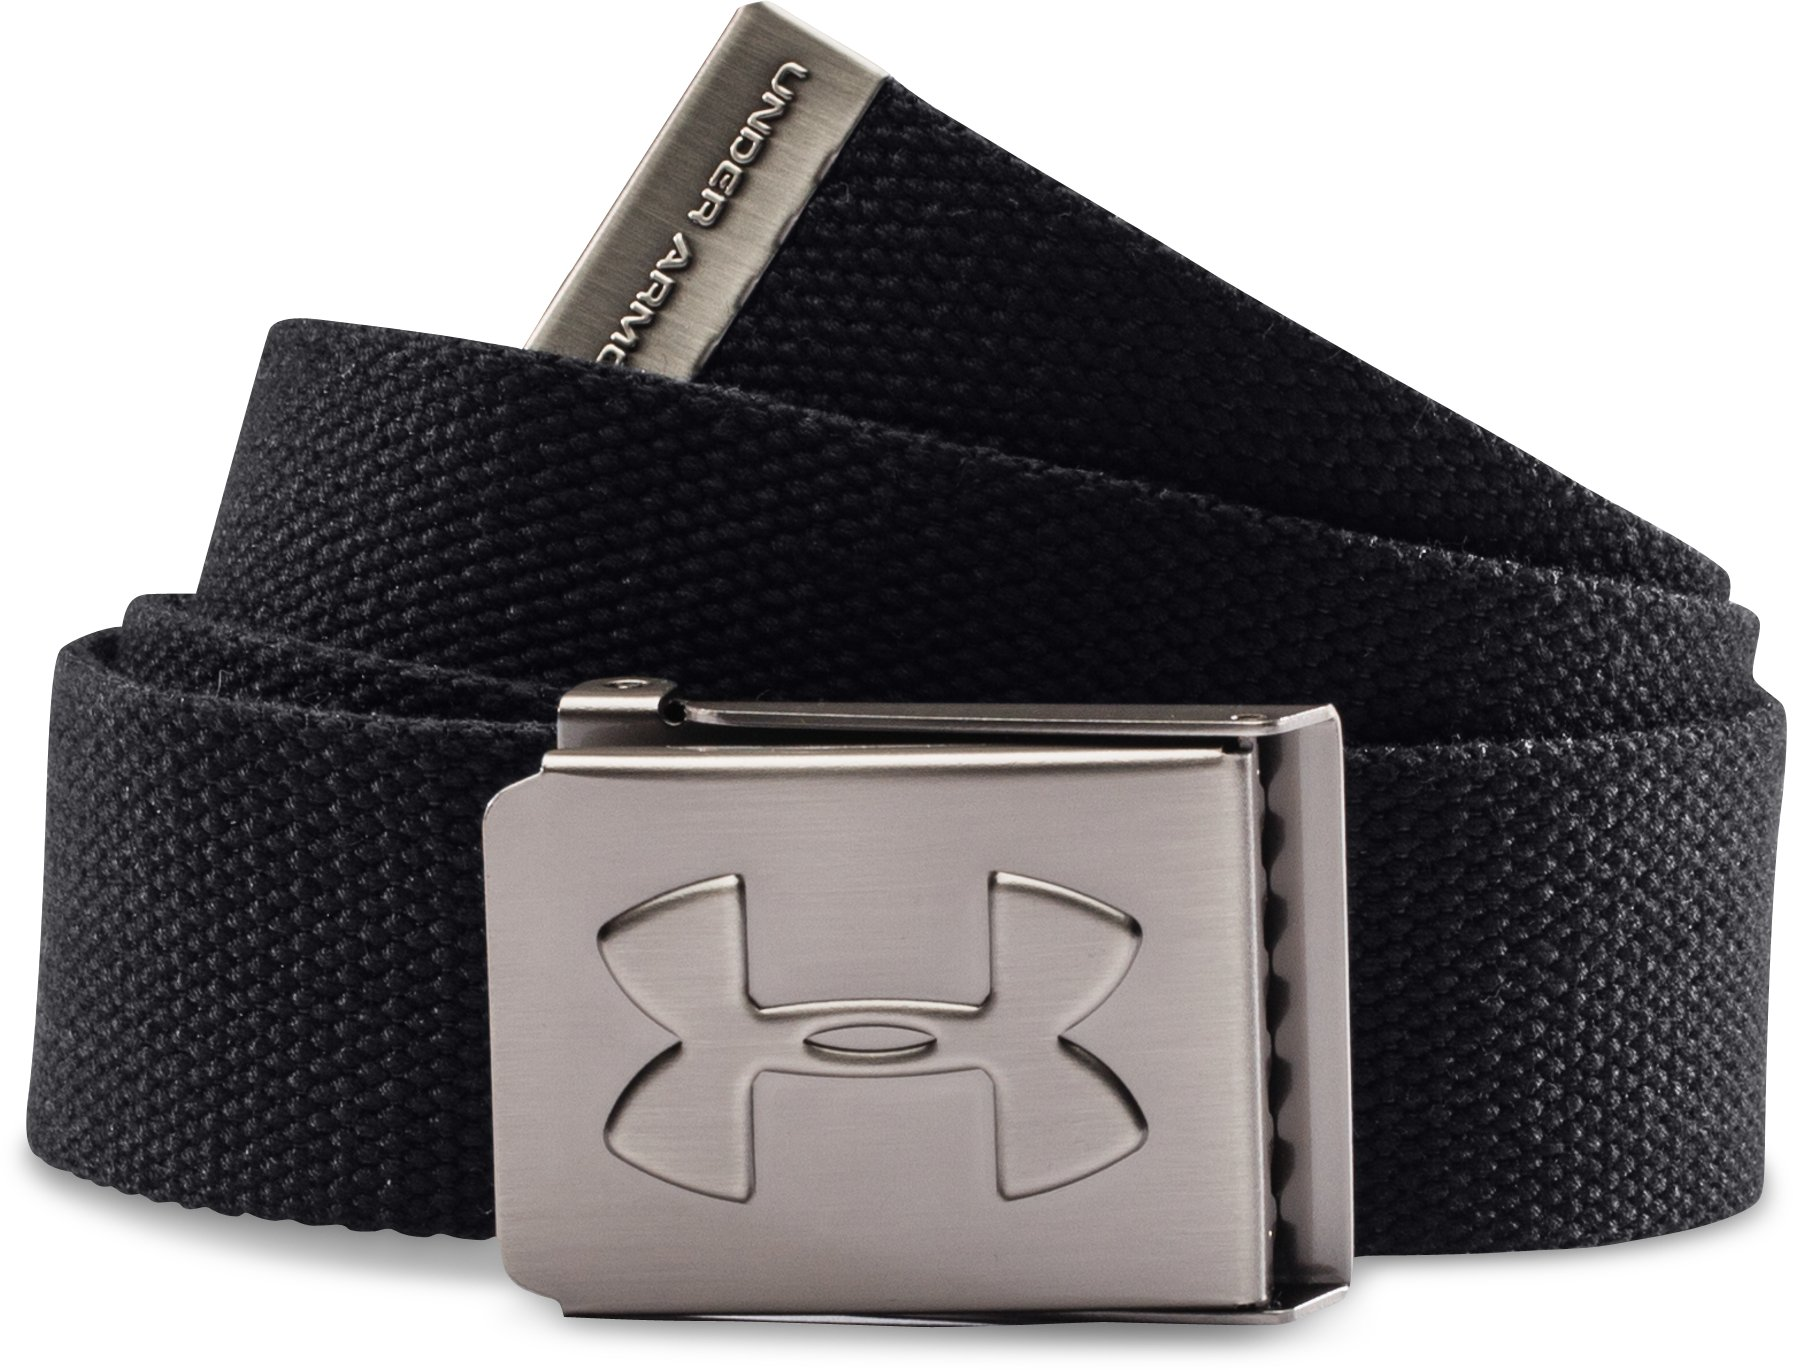 cool leather belts Boys' UA Webbed Belt <strong>Awesome</strong> belt...can get the perfect tightness.